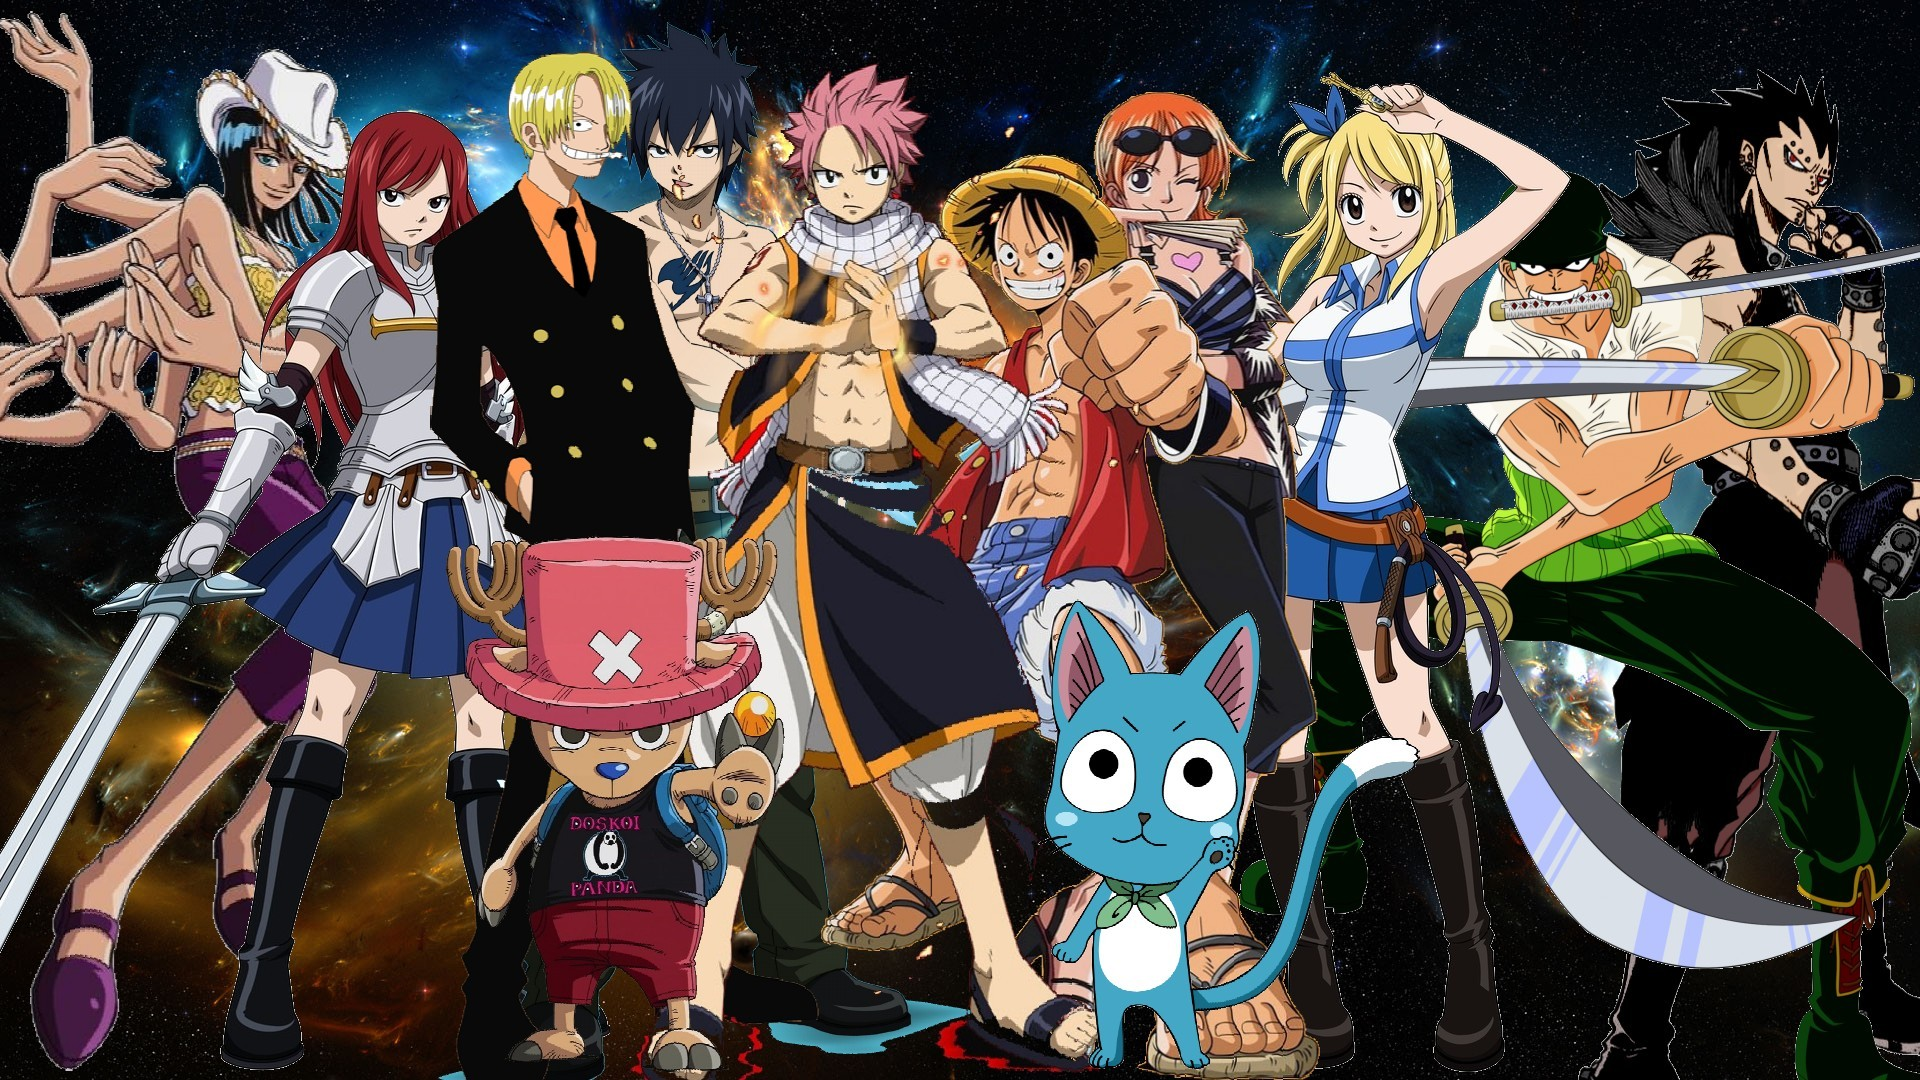 fairy tail wallpaper  HD Photo Wallpaper Collection HD WALLPAPERS 1920x1080